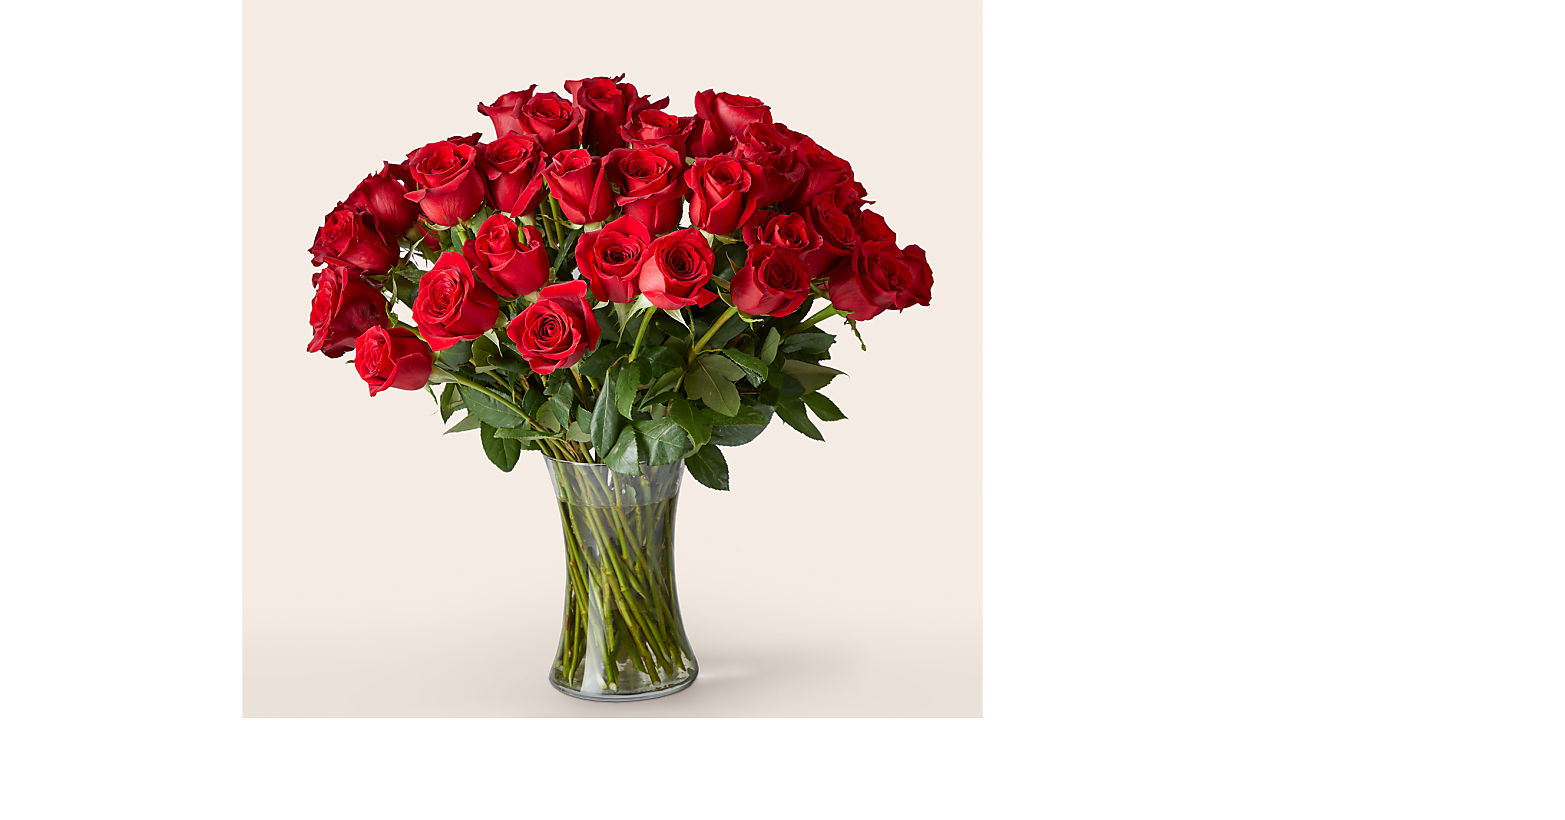 Fifty Long Stem Red Roses with Vase - Image 1 Of 3